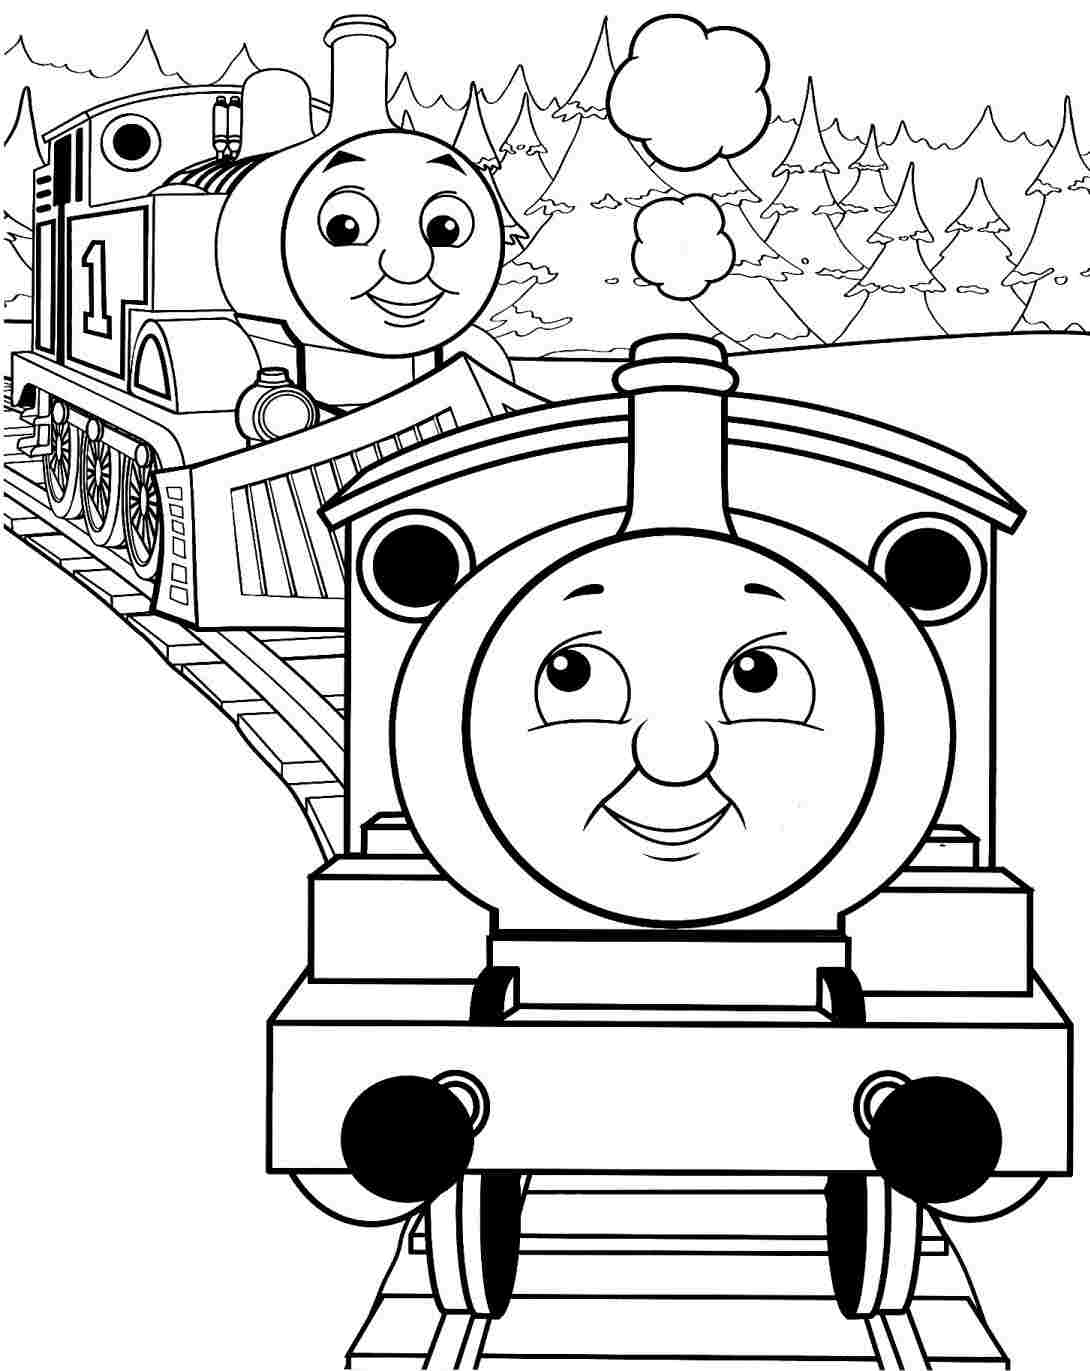 1090x1371 Thomas The Train Coloring Pages Printable Bestappsforkids Com